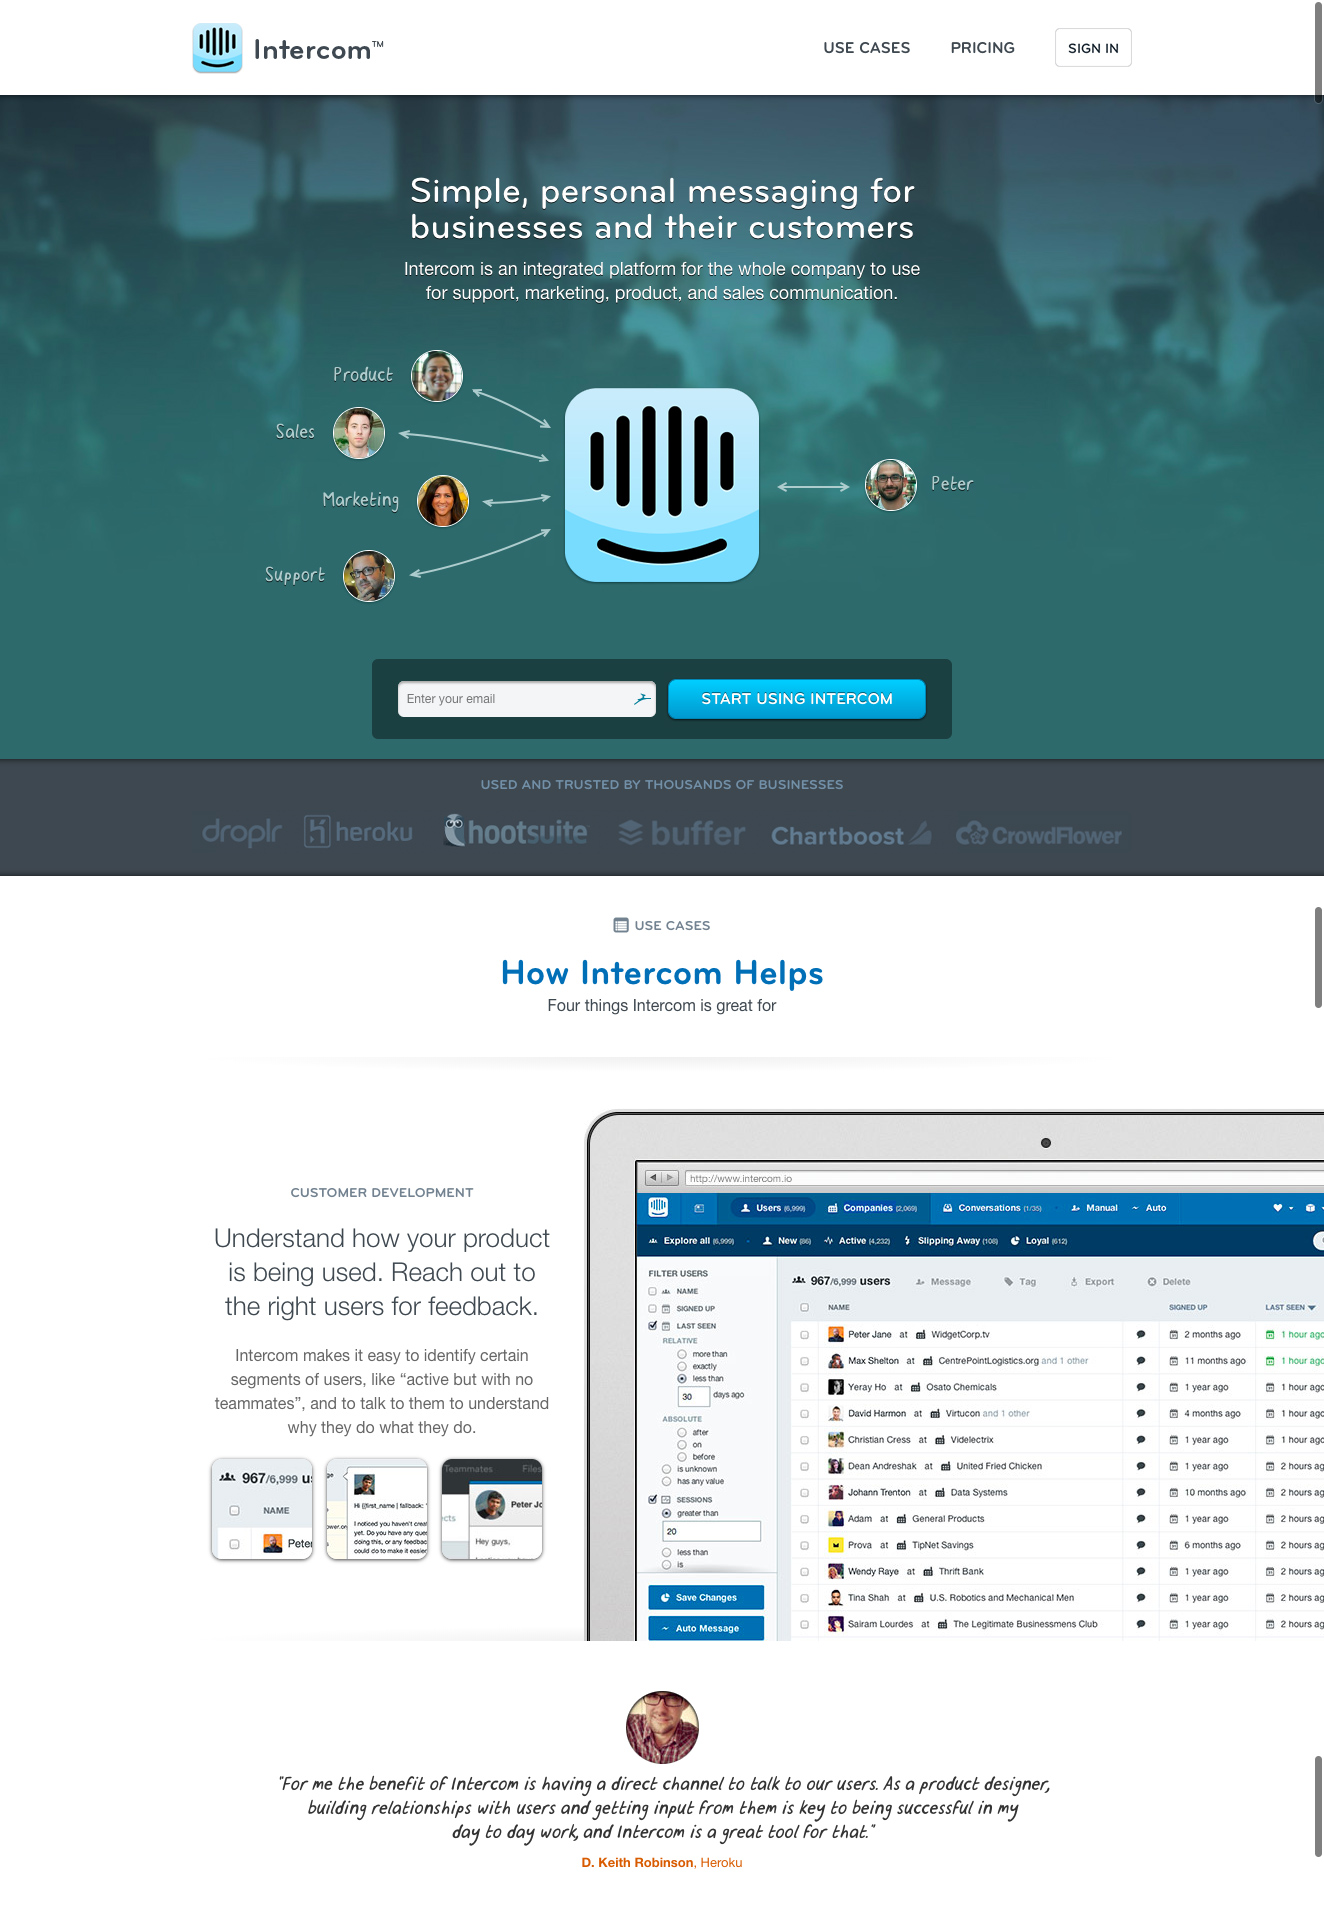 Intercom website, early-2014 (before I joined)